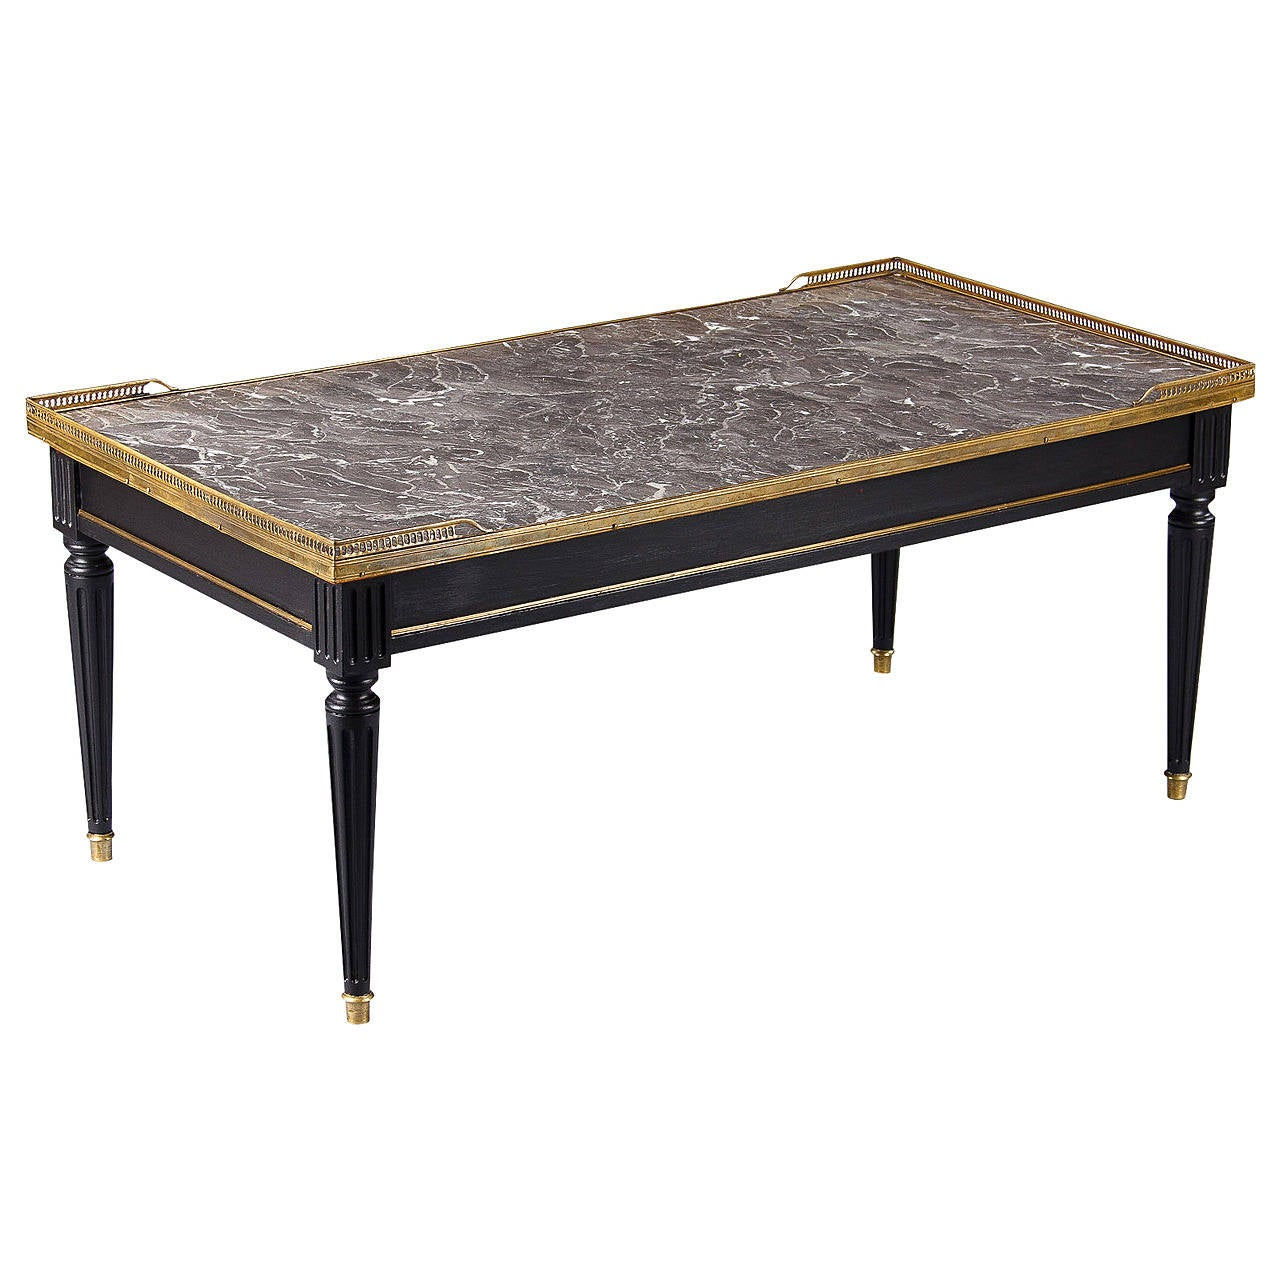 French louis xvi style marble top coffee table 1940s at 1stdibs Stone top coffee table